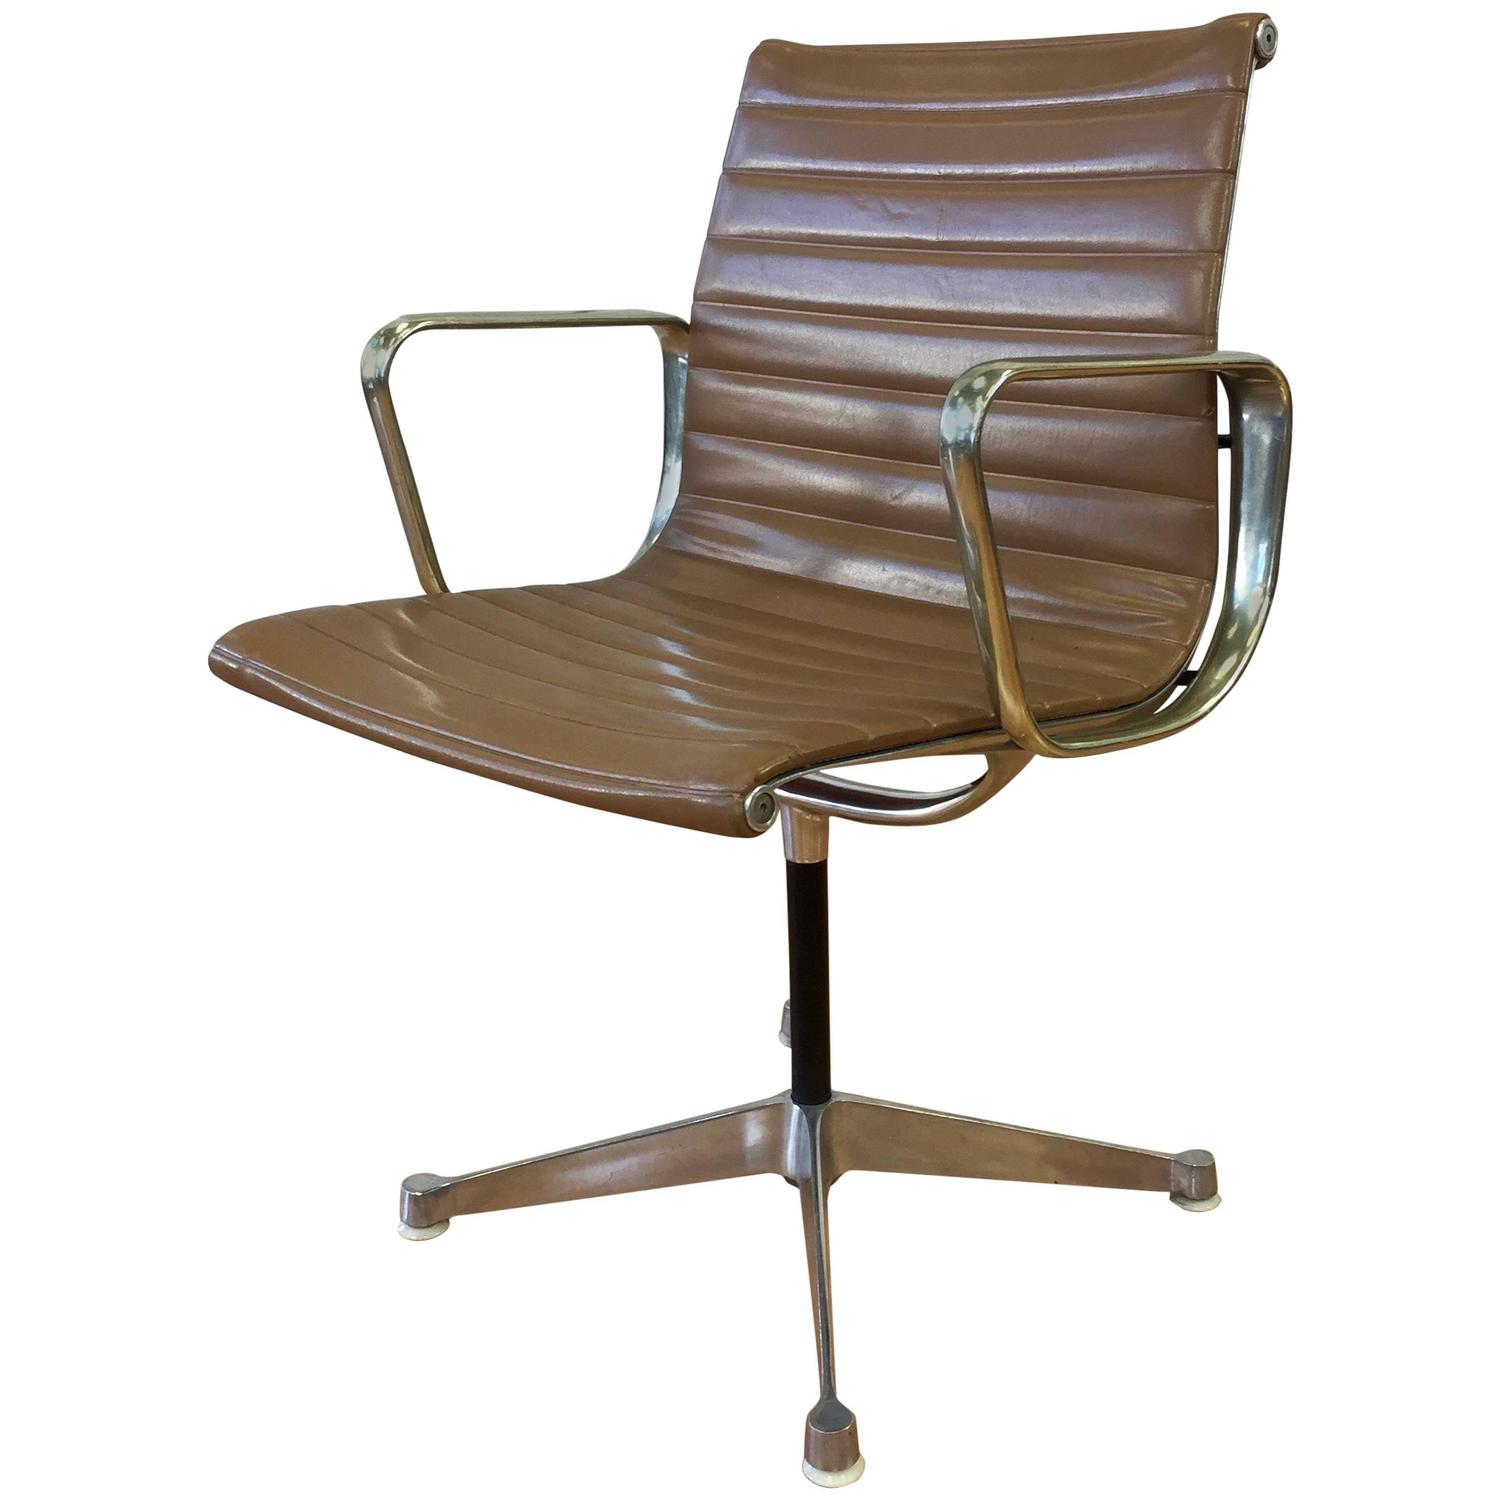 early eames aluminium group management chair by herman miller at 1stdibs